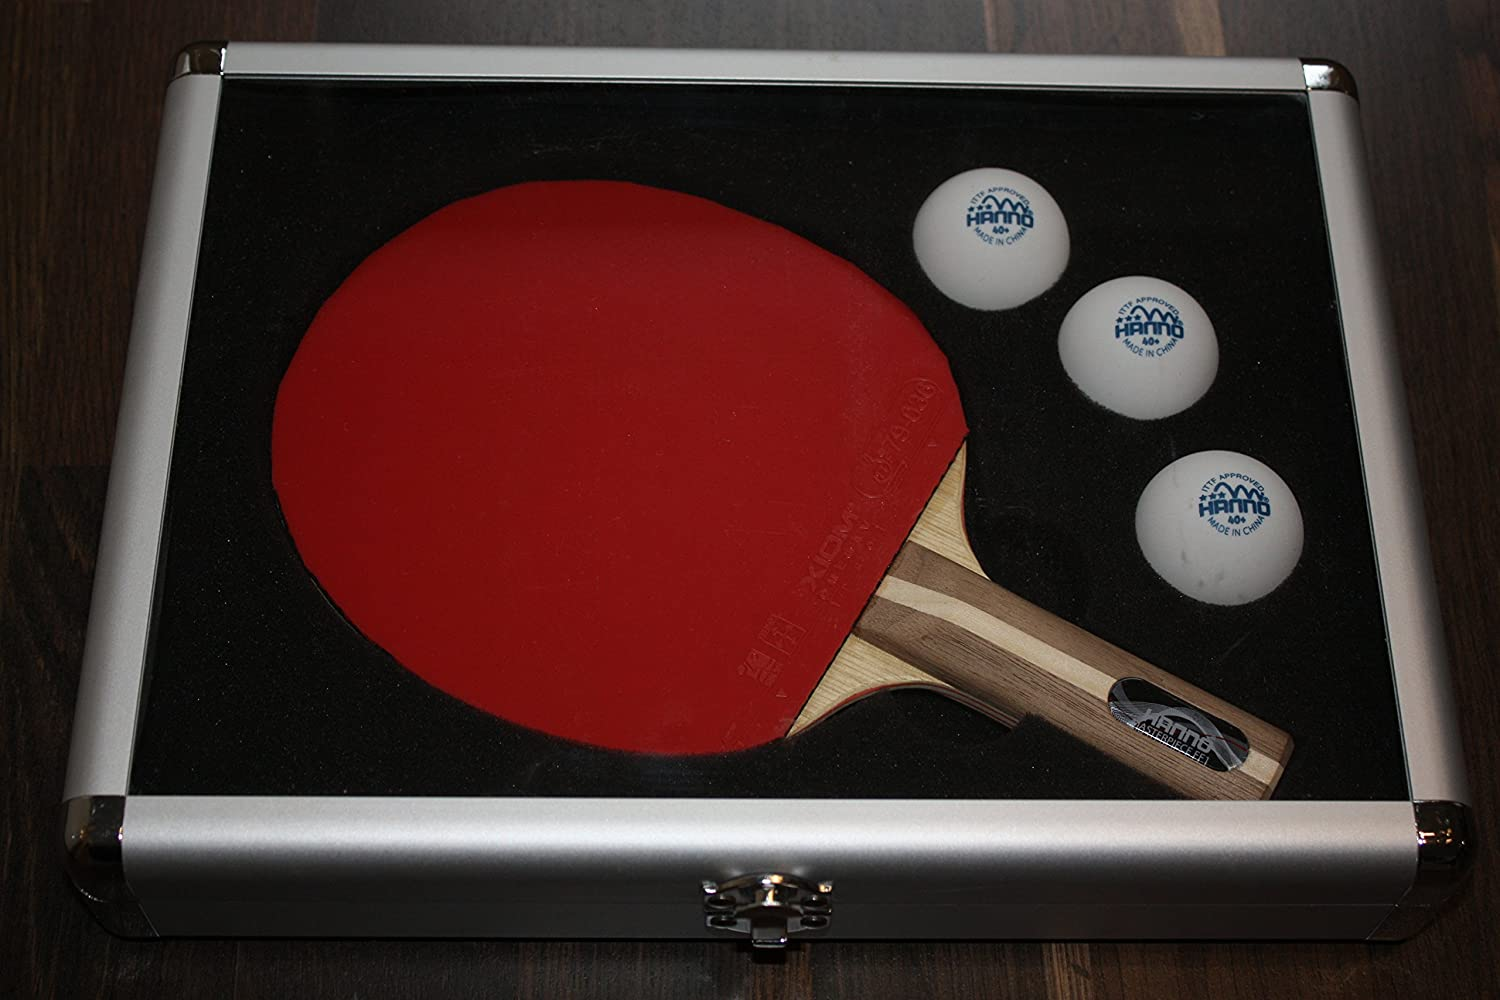 Aluminium Case, Table Tennis Bat Case HANNO HANNO Alu Koffer